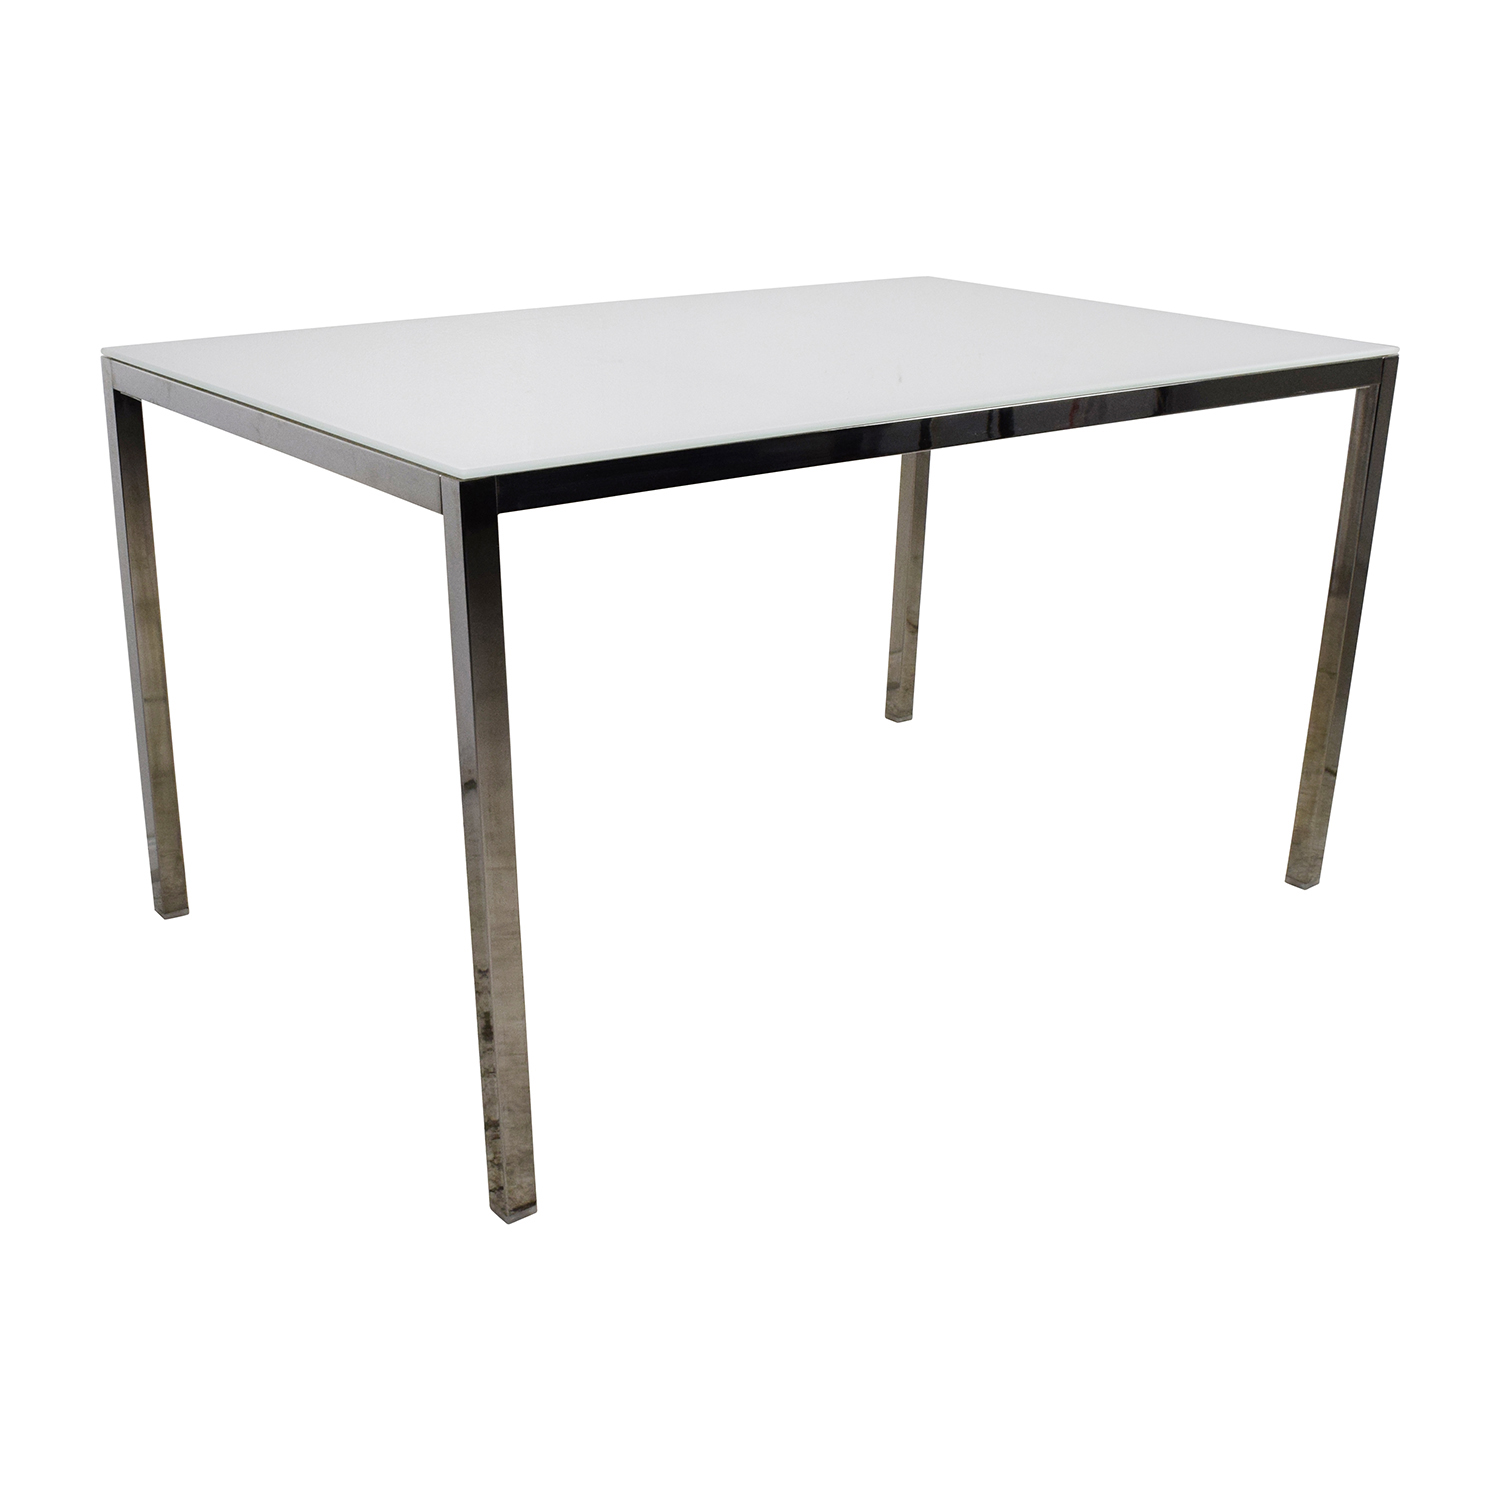 85% OFF IKEA IKEA Torsby Glass Top Dining Table Tables